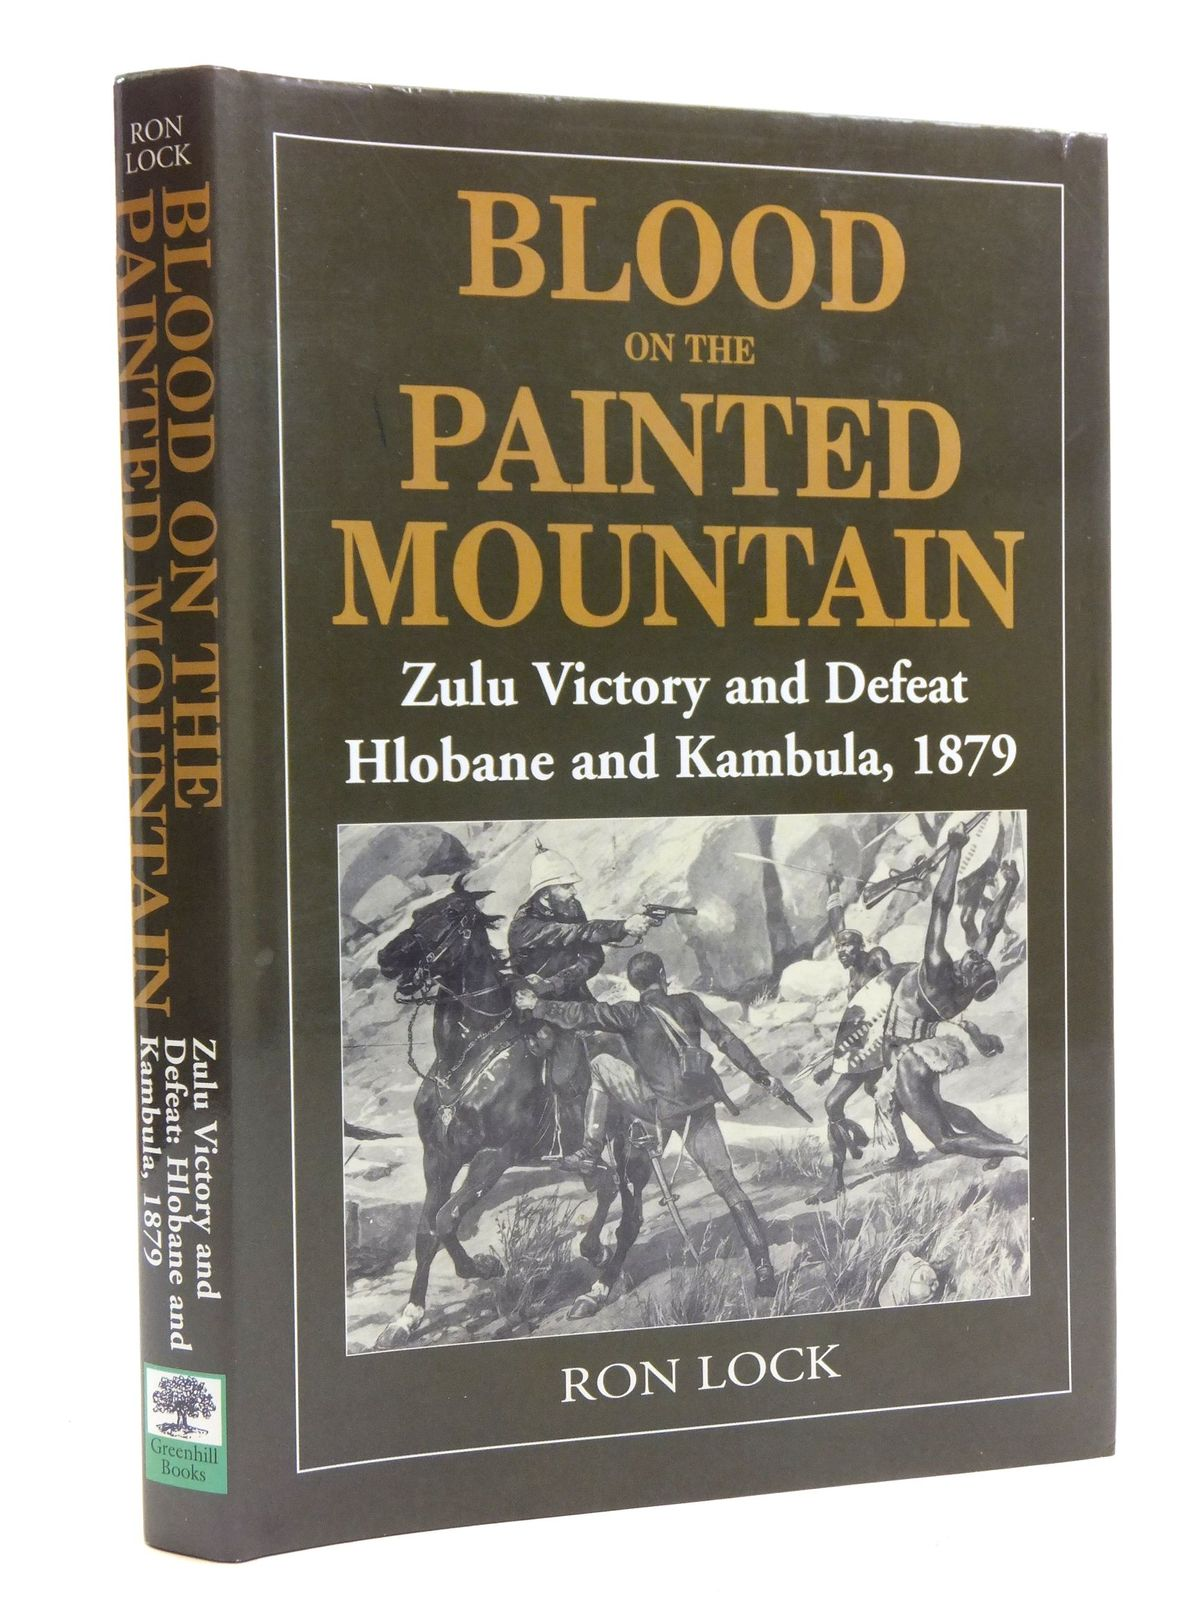 Photo of BLOOD ON THE PAINTED MOUNTAIN ZULU VICTORY AND DEFEAT HLOBANE AND KAMBULA 1879 written by Lock, Ron published by Greenhill Books (STOCK CODE: 2120376)  for sale by Stella & Rose's Books